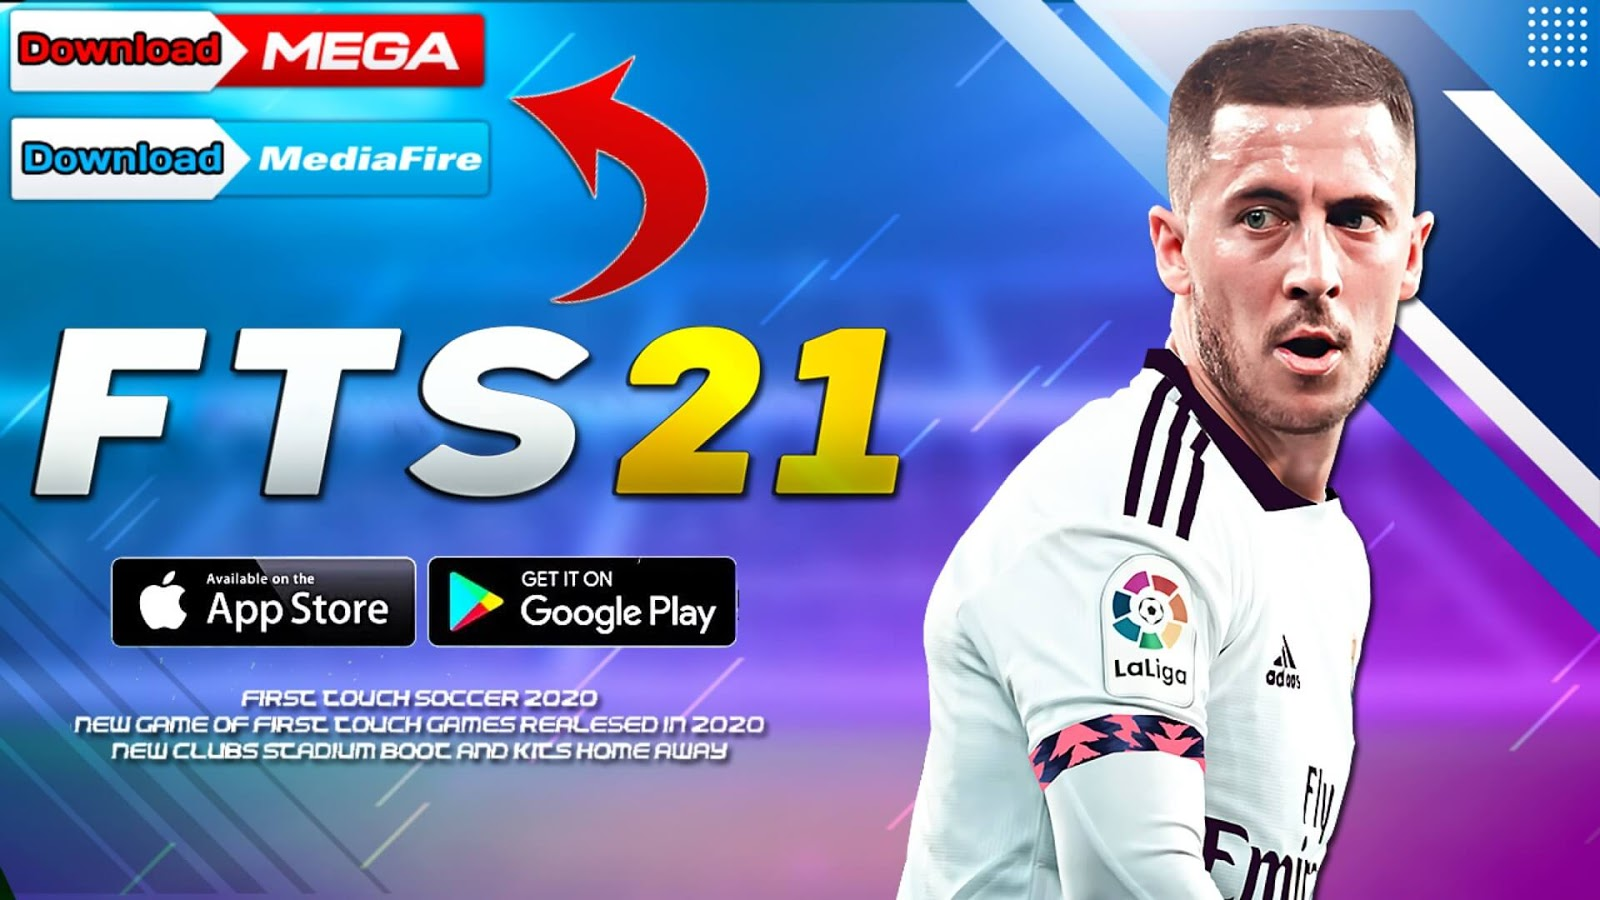 fts 21 android 300 mb offline first touch soccer 2021 fts 21 android 300 mb offline first